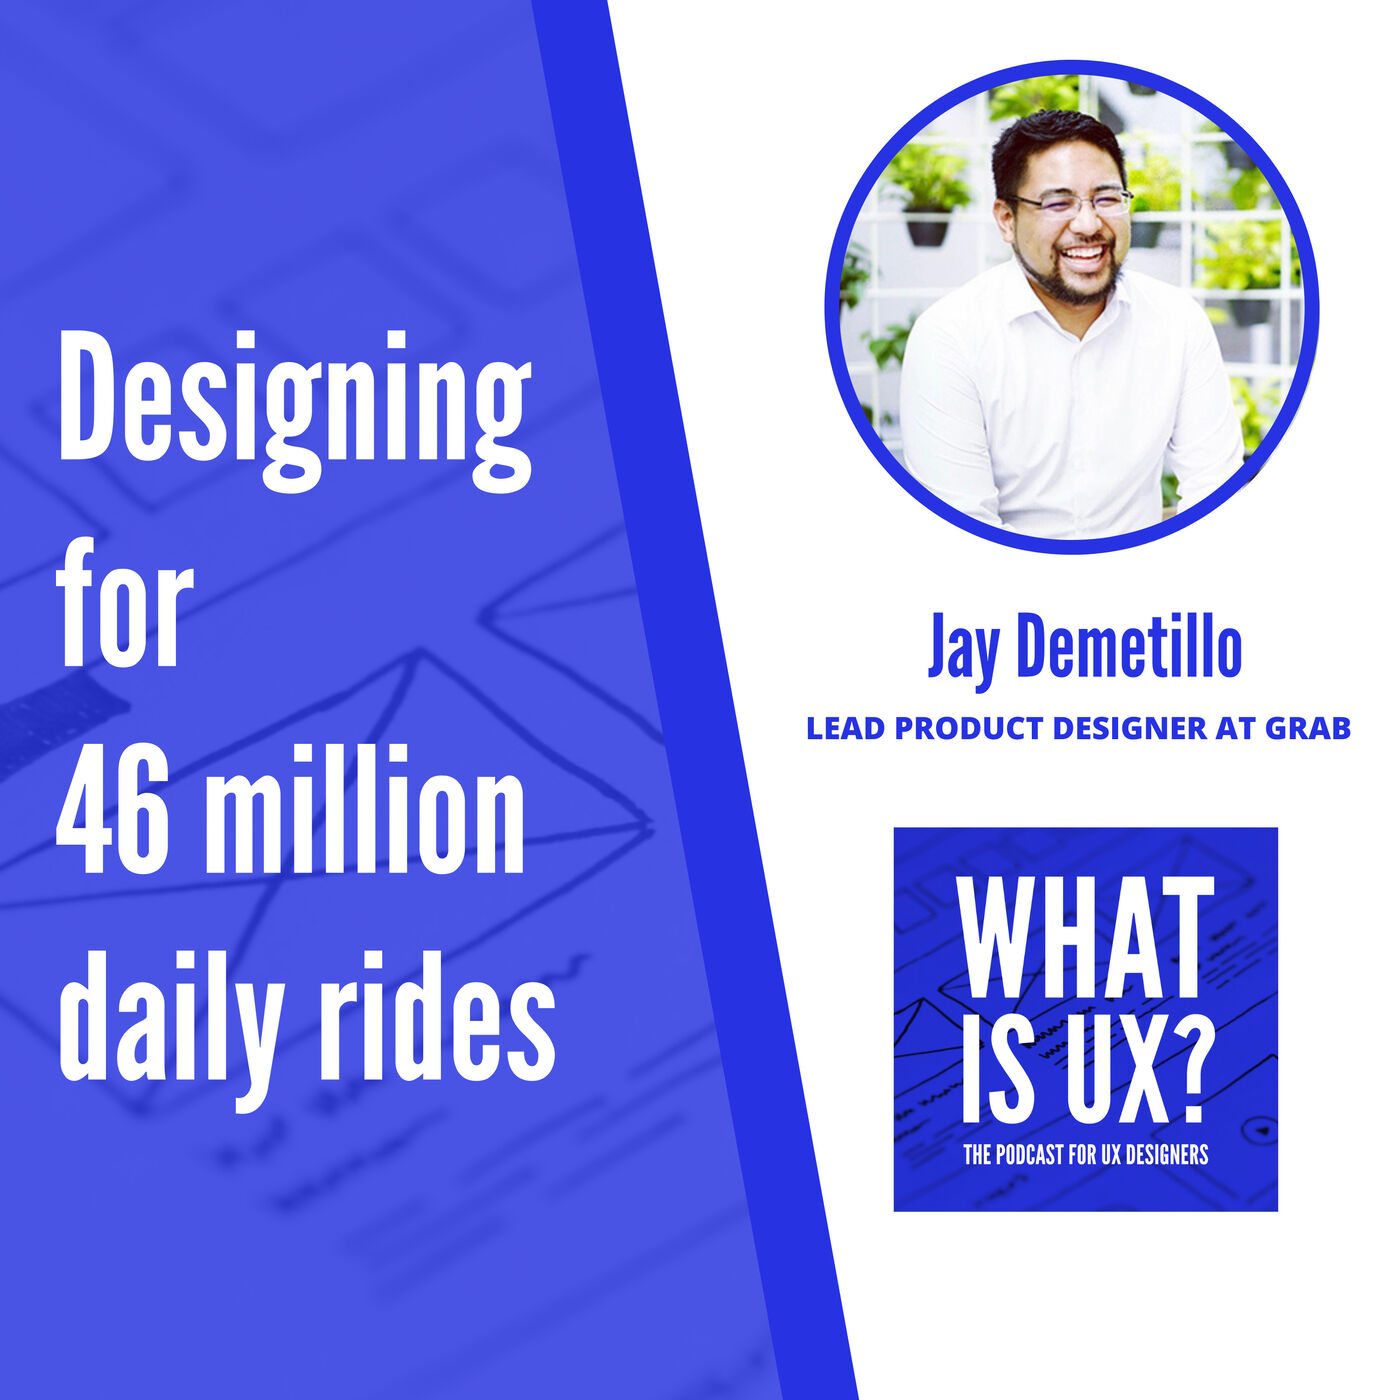 S1E6 Designing for 46 million daily rides with Jay Demetillo